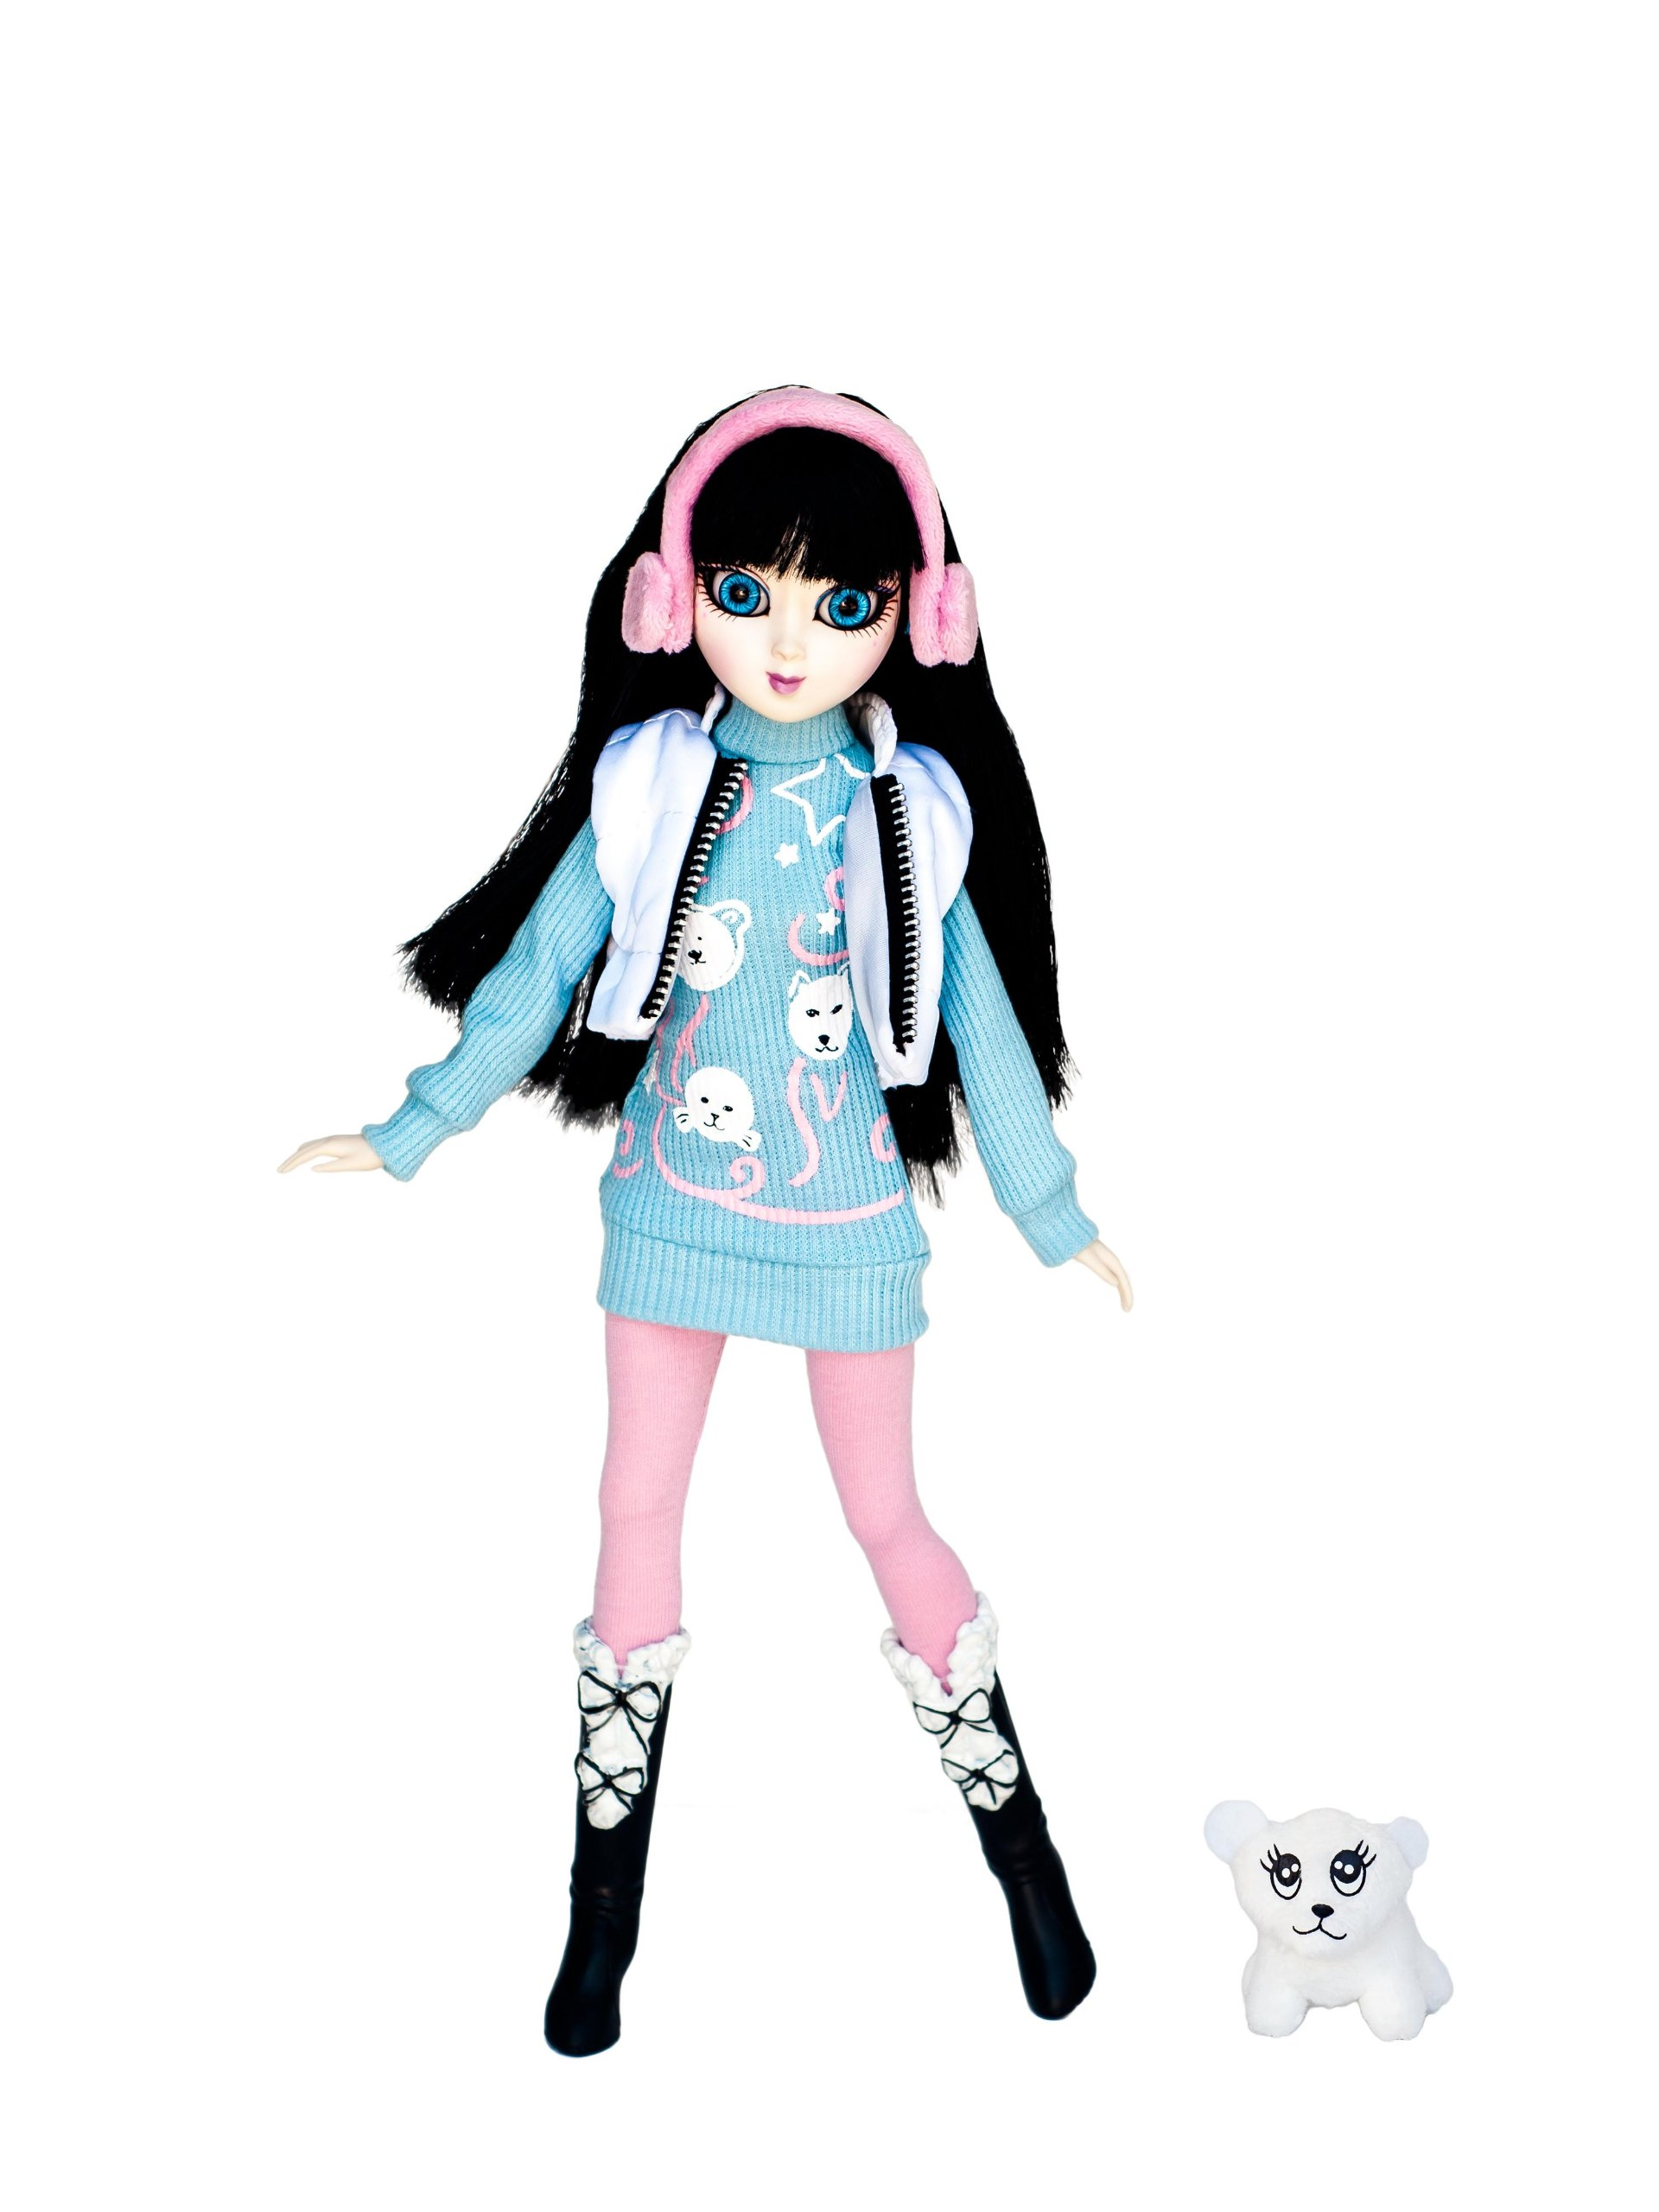 Zeenie Dollz Kazumi - Protector of Polar Regions - Eco Warrior